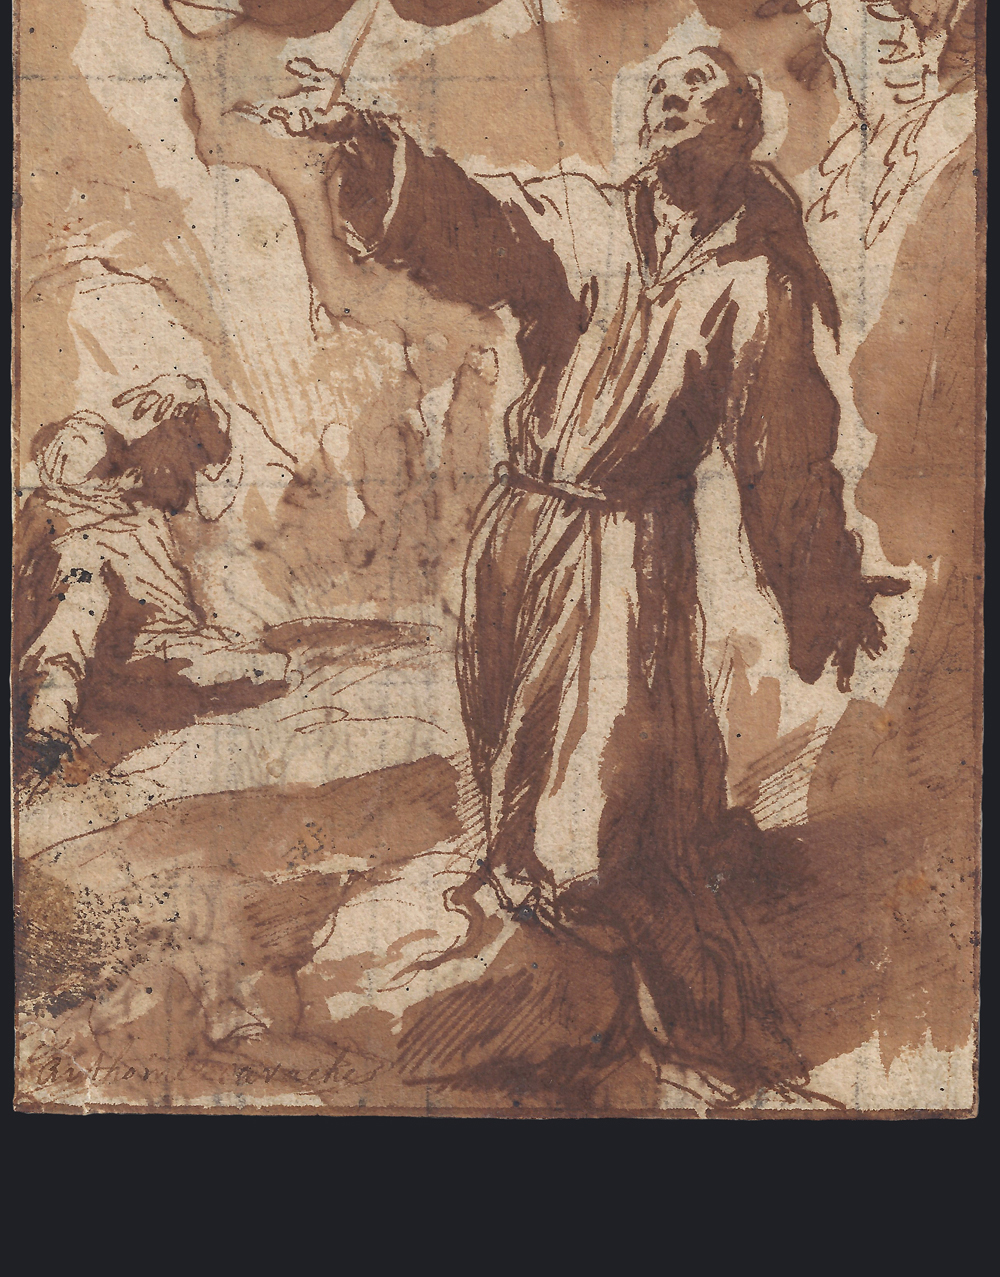 Attributed to Giovanni Lanfranco